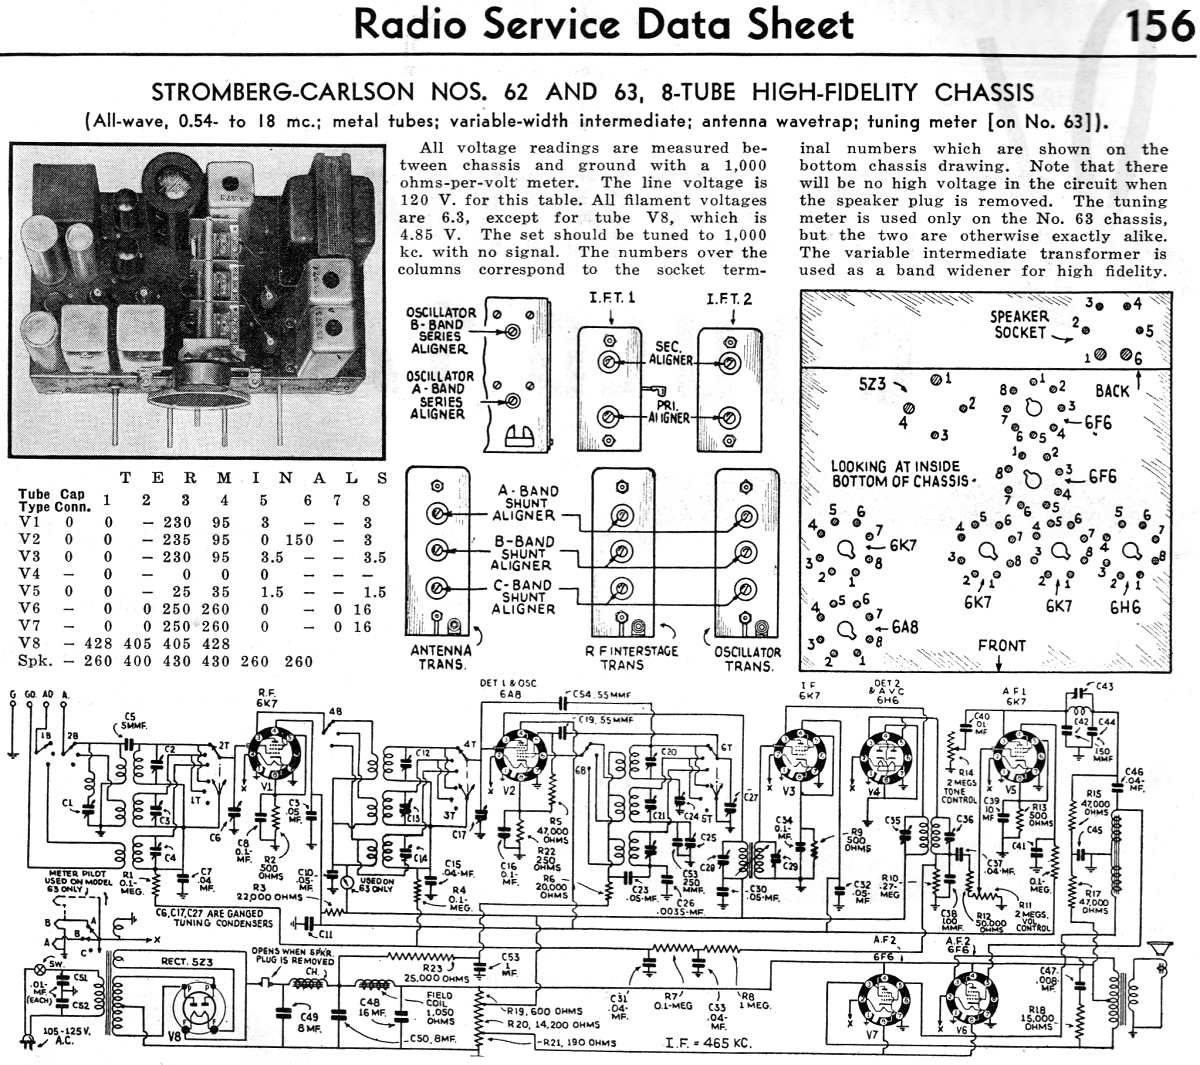 Arvin 152t July 1948 Radio News in addition Hallicrafters S 38 Schematic as well Magnavox Console Speaker Wiring Diagram moreover Schindex in addition Msg112149076716. on 3 vintage tube radio schematic